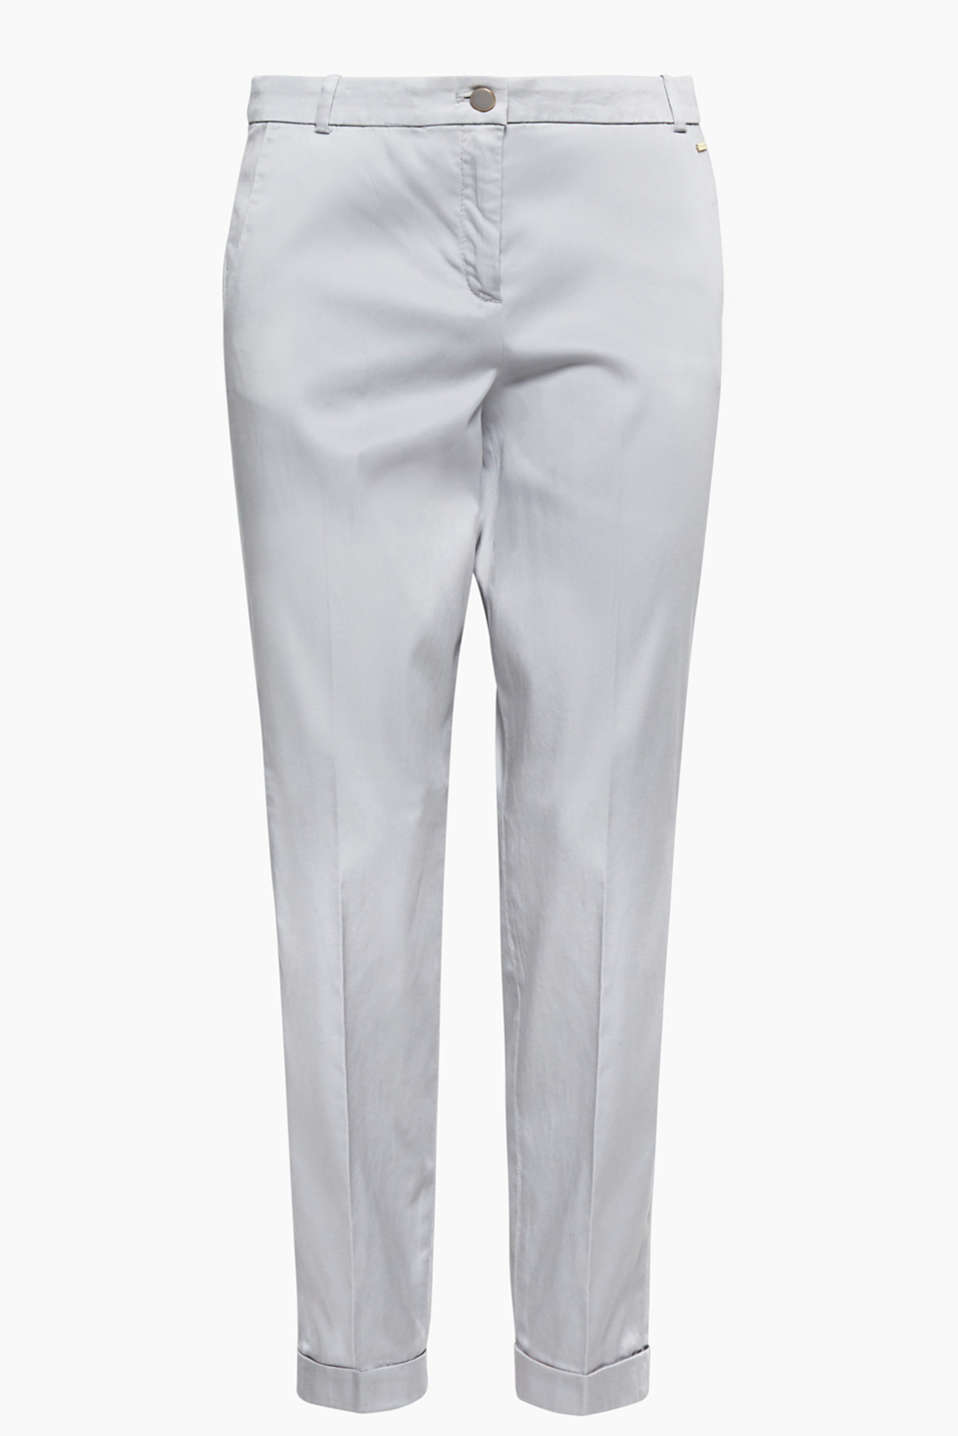 We love colours with a 70s flair! These chinos impress with their subtle satin finish.